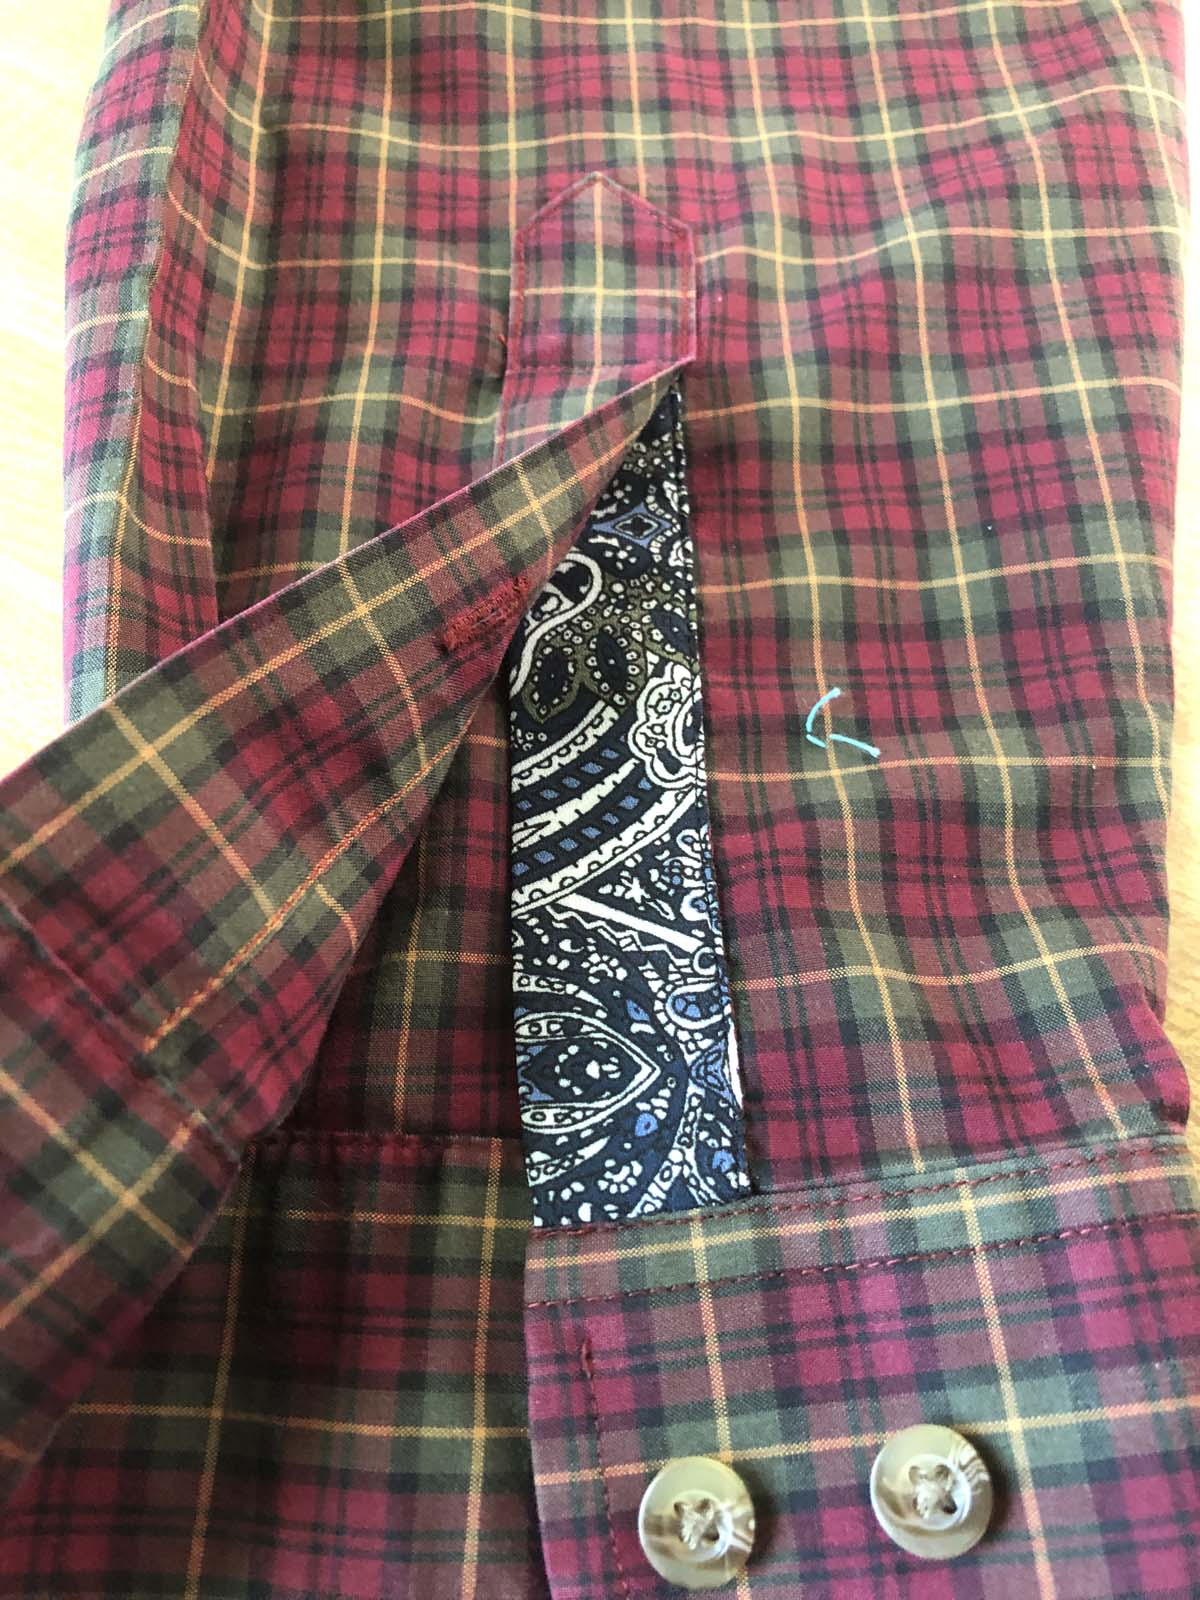 Appliqued left sleeve placket on red plaid shirt